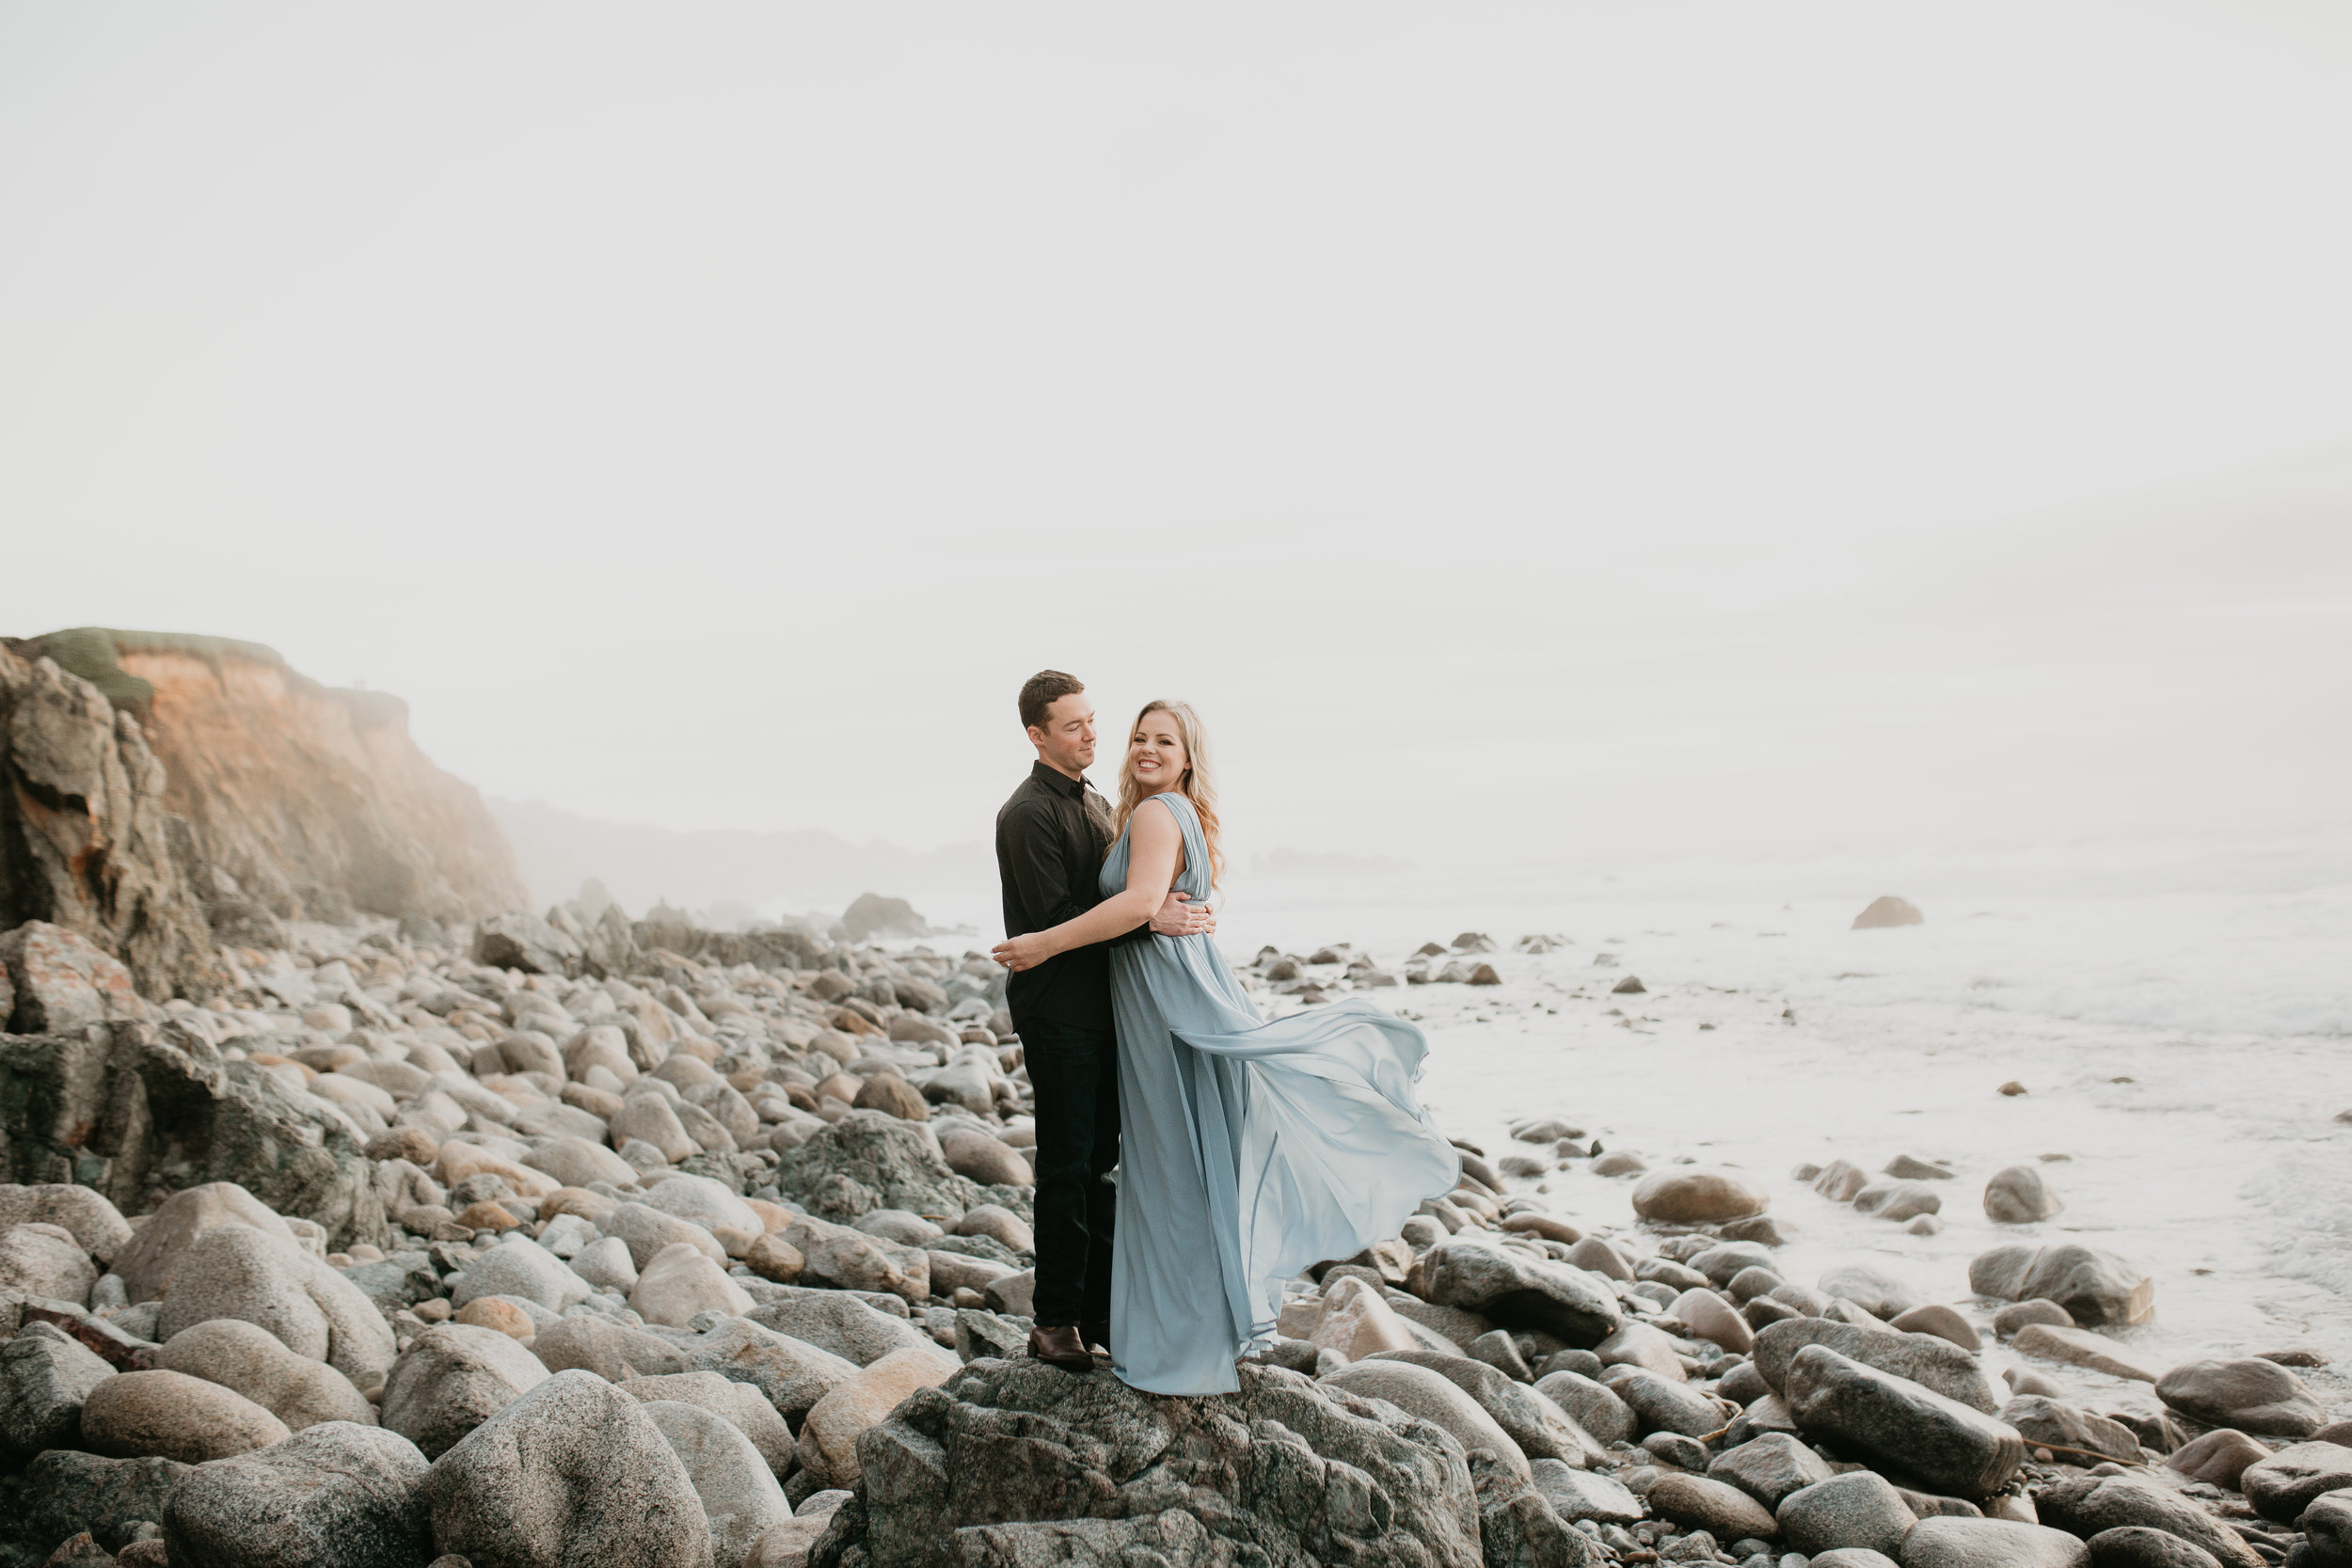 Nicole-Daacke-Photography-big-sur-garrapatta-state-park-adventurous-engagement-session-bixy-bridge-elopement-big-sur-wedding-photographer-monterey-elopement-photographer-california-golden-sunset-coast-photos-46.jpg